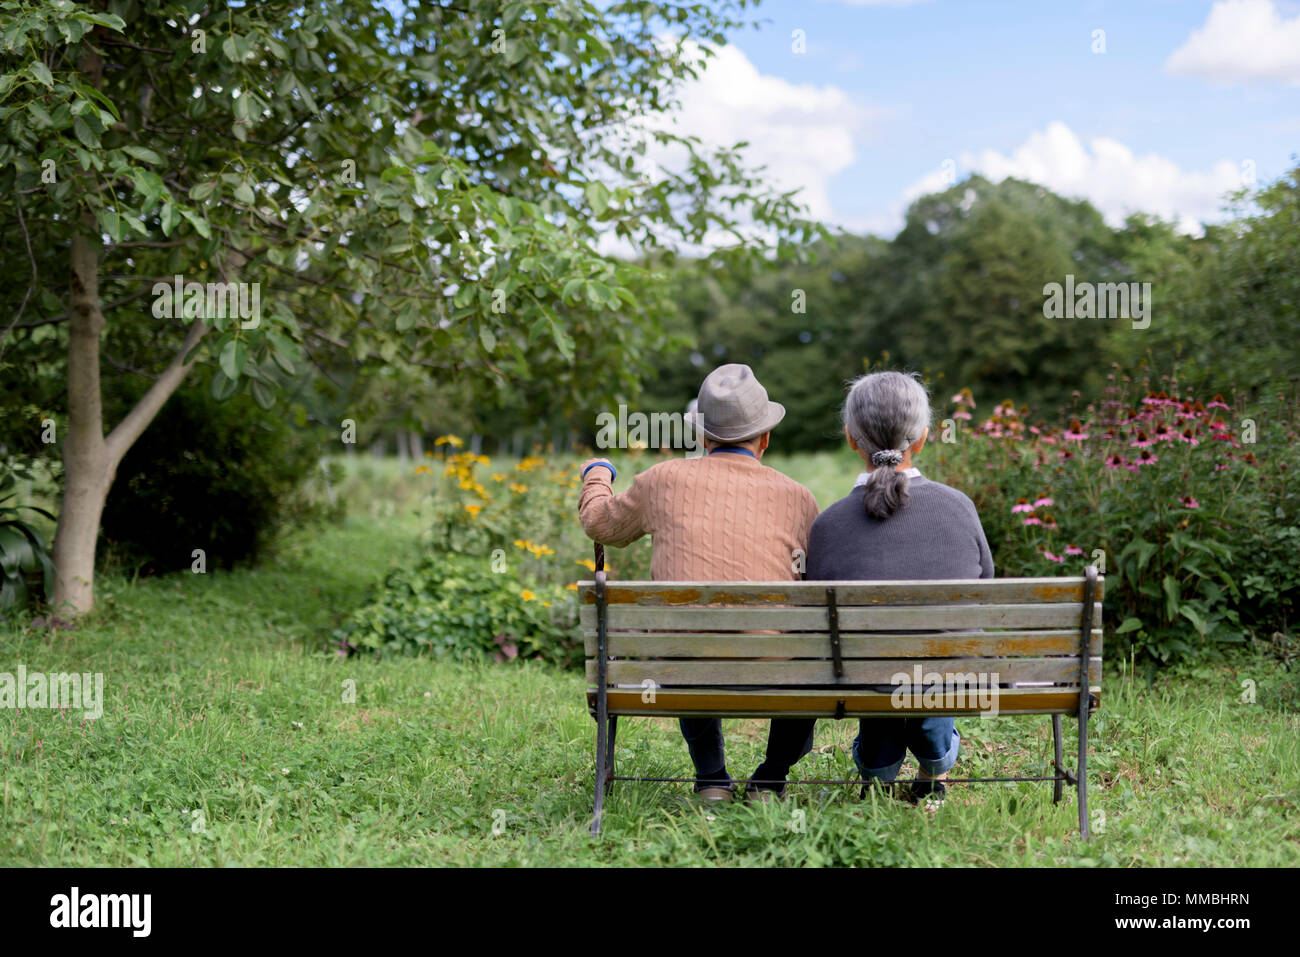 Husband and wife, rear view of elderly man wearing hat and woman sitting side by side on a bench in a garden. - Stock Image